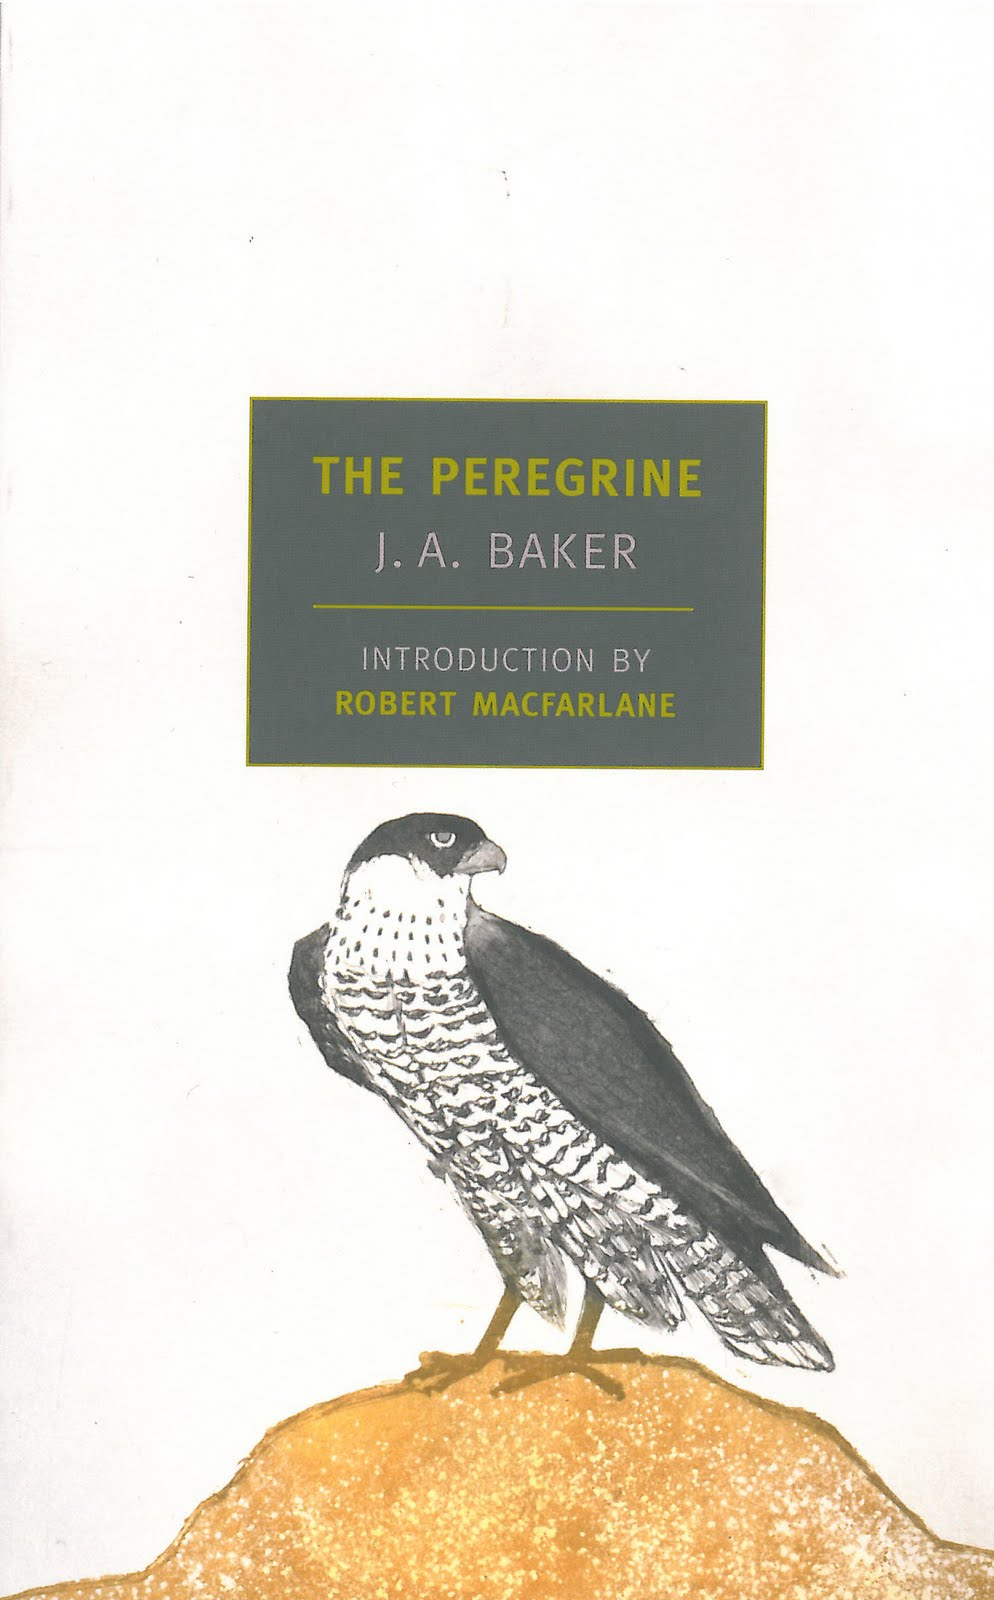 The Peregine, by J. A. Baker